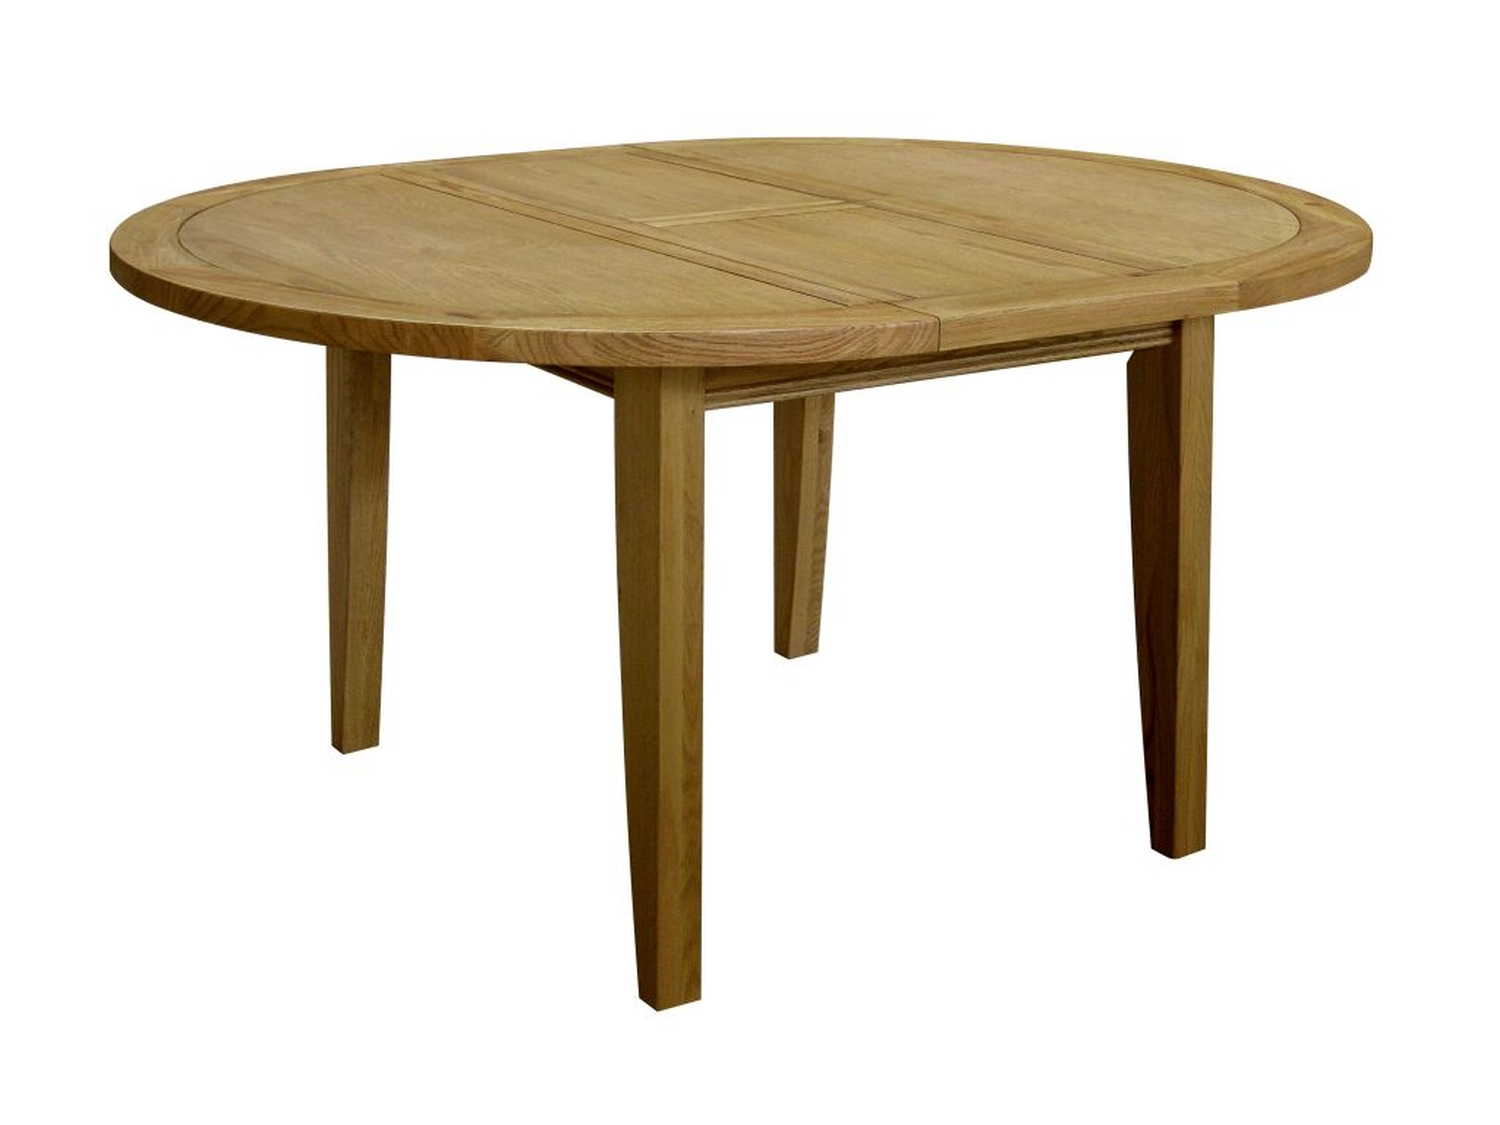 Linden Oak Dining Room Furniture Round Extending Dining Table EBay